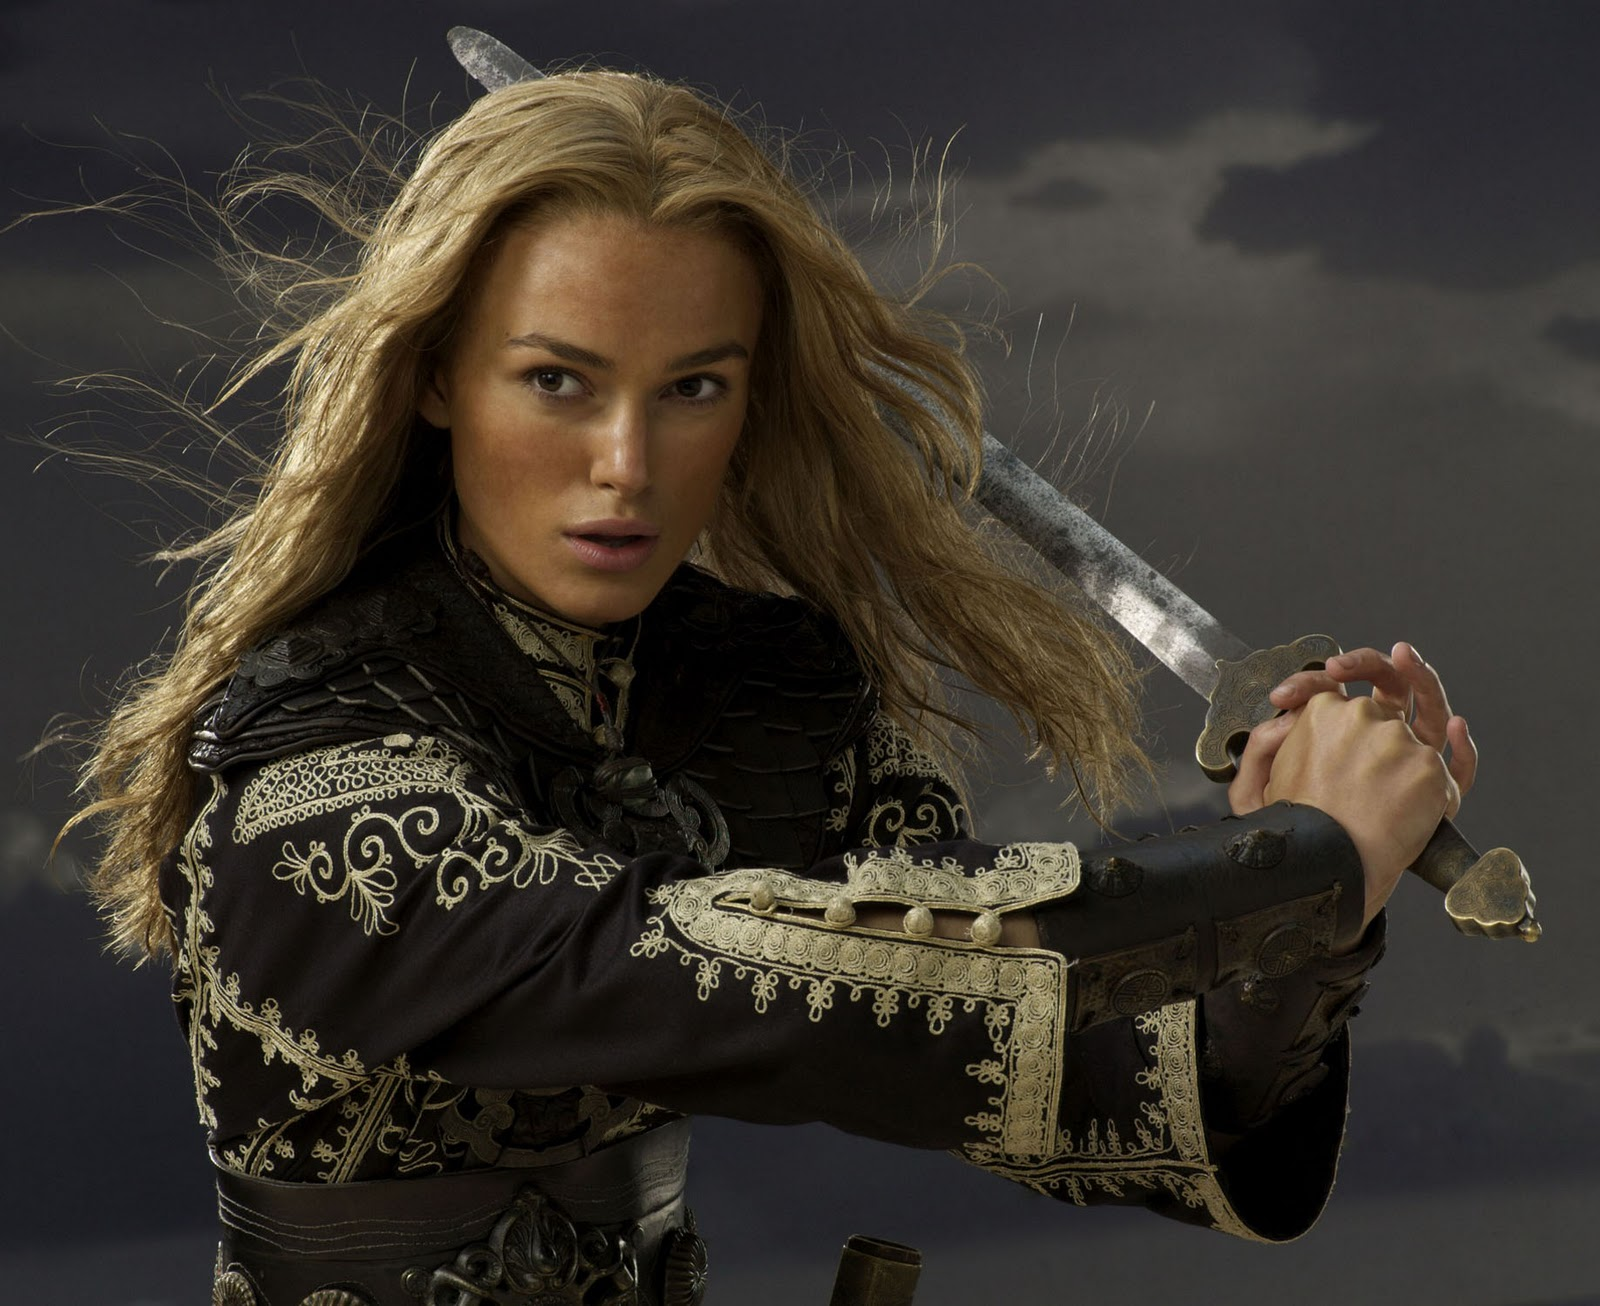 Thank Elizabeth swann has sex message, matchless)))